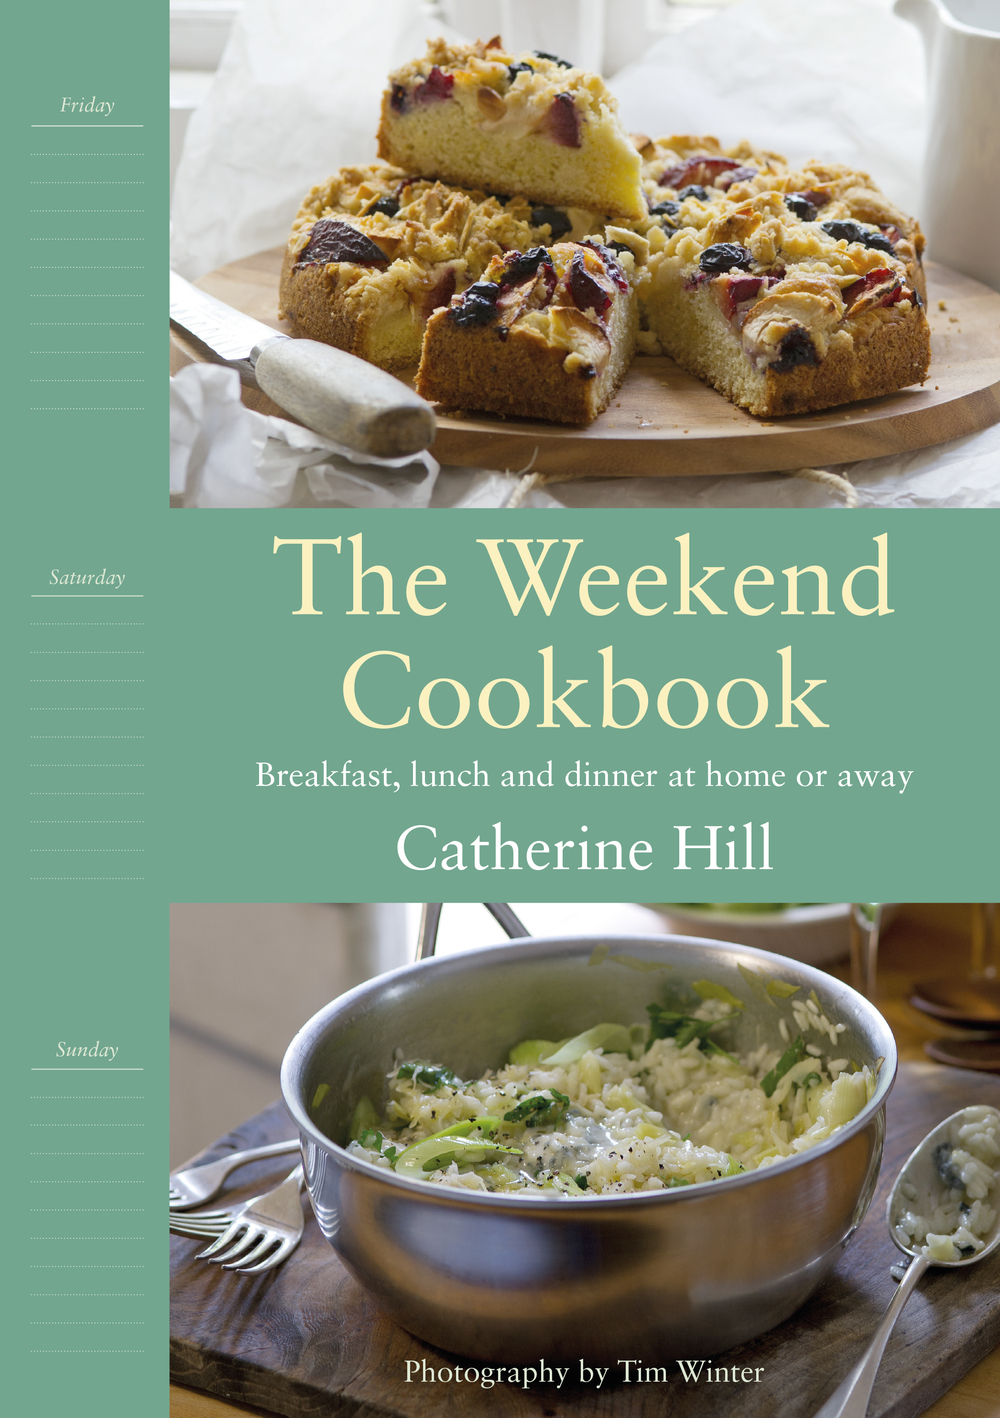 The Weekend Cookbook.jpg